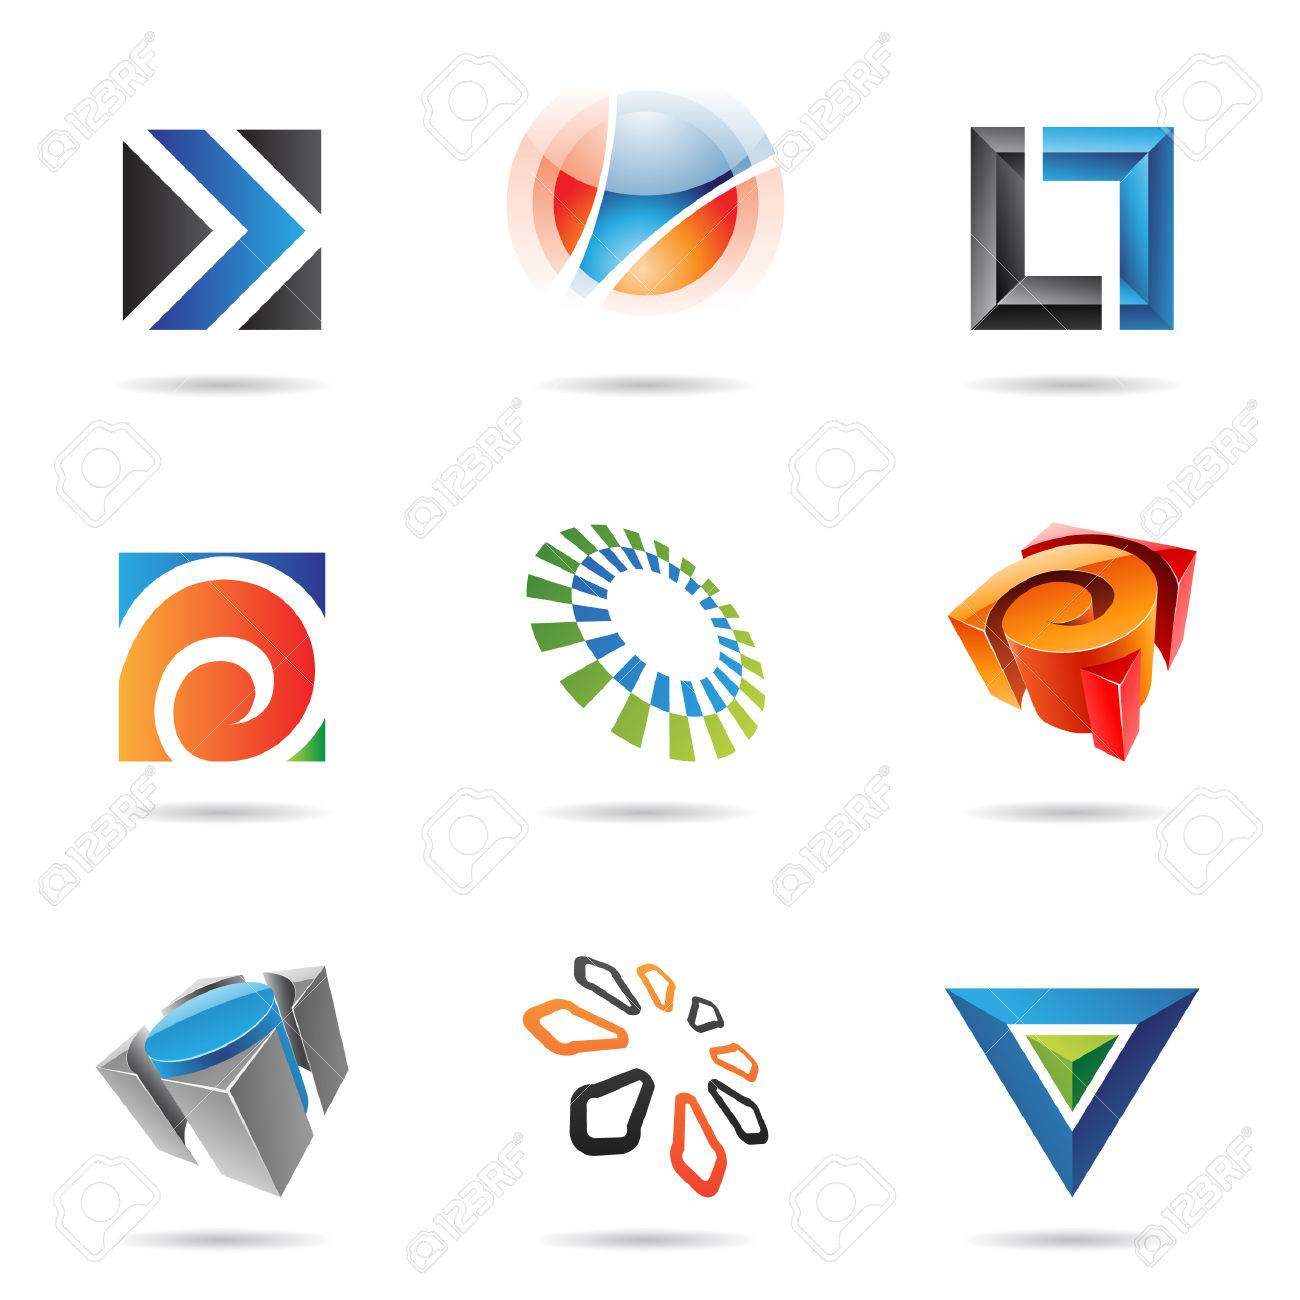 Various colorful abstract icons isolated on a white background Stock Vector - 7379170